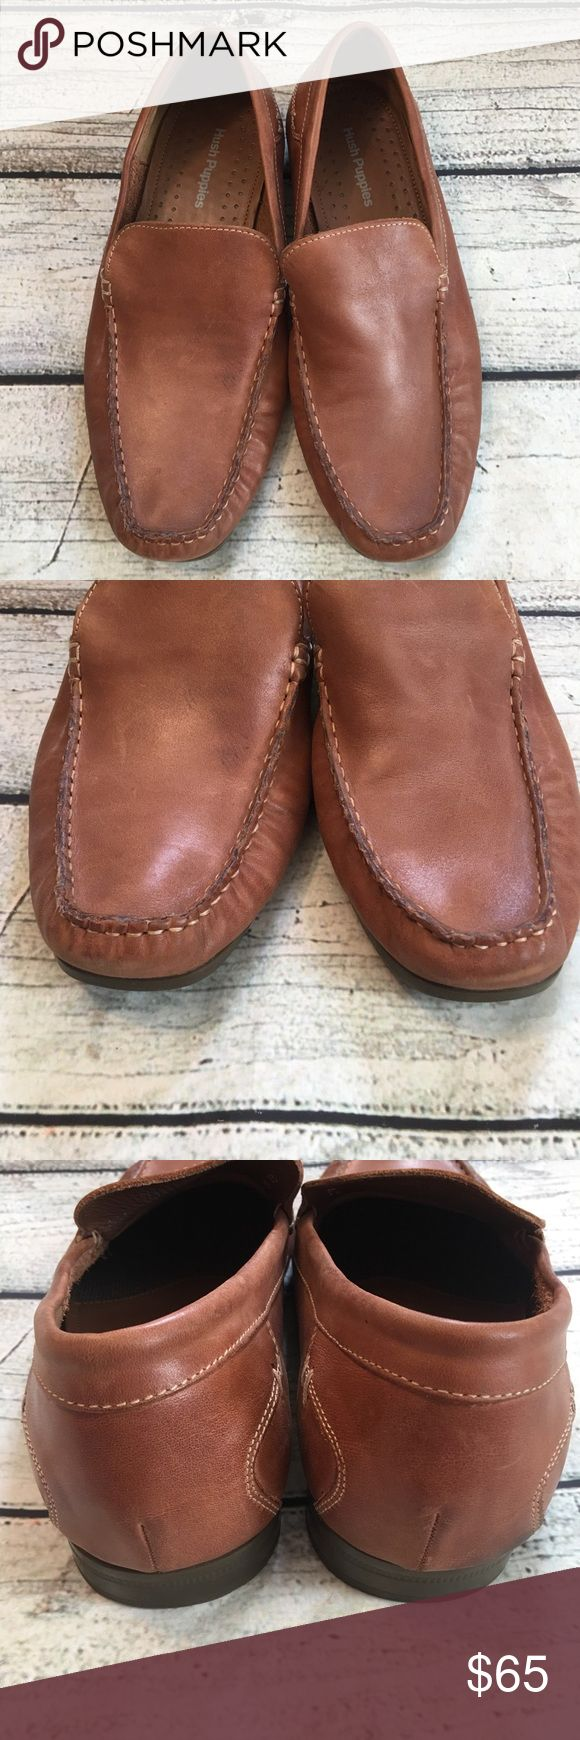 Hush Puppies HPO2 flex brown loafers slide on 9.5W Preowned men's Hush Puppies HPO2 flex brown leather loafers slide on shoes size 9.5 Wide has scuffs distress look see all pictures. Hush Puppies Shoes Loafers & Slip-Ons